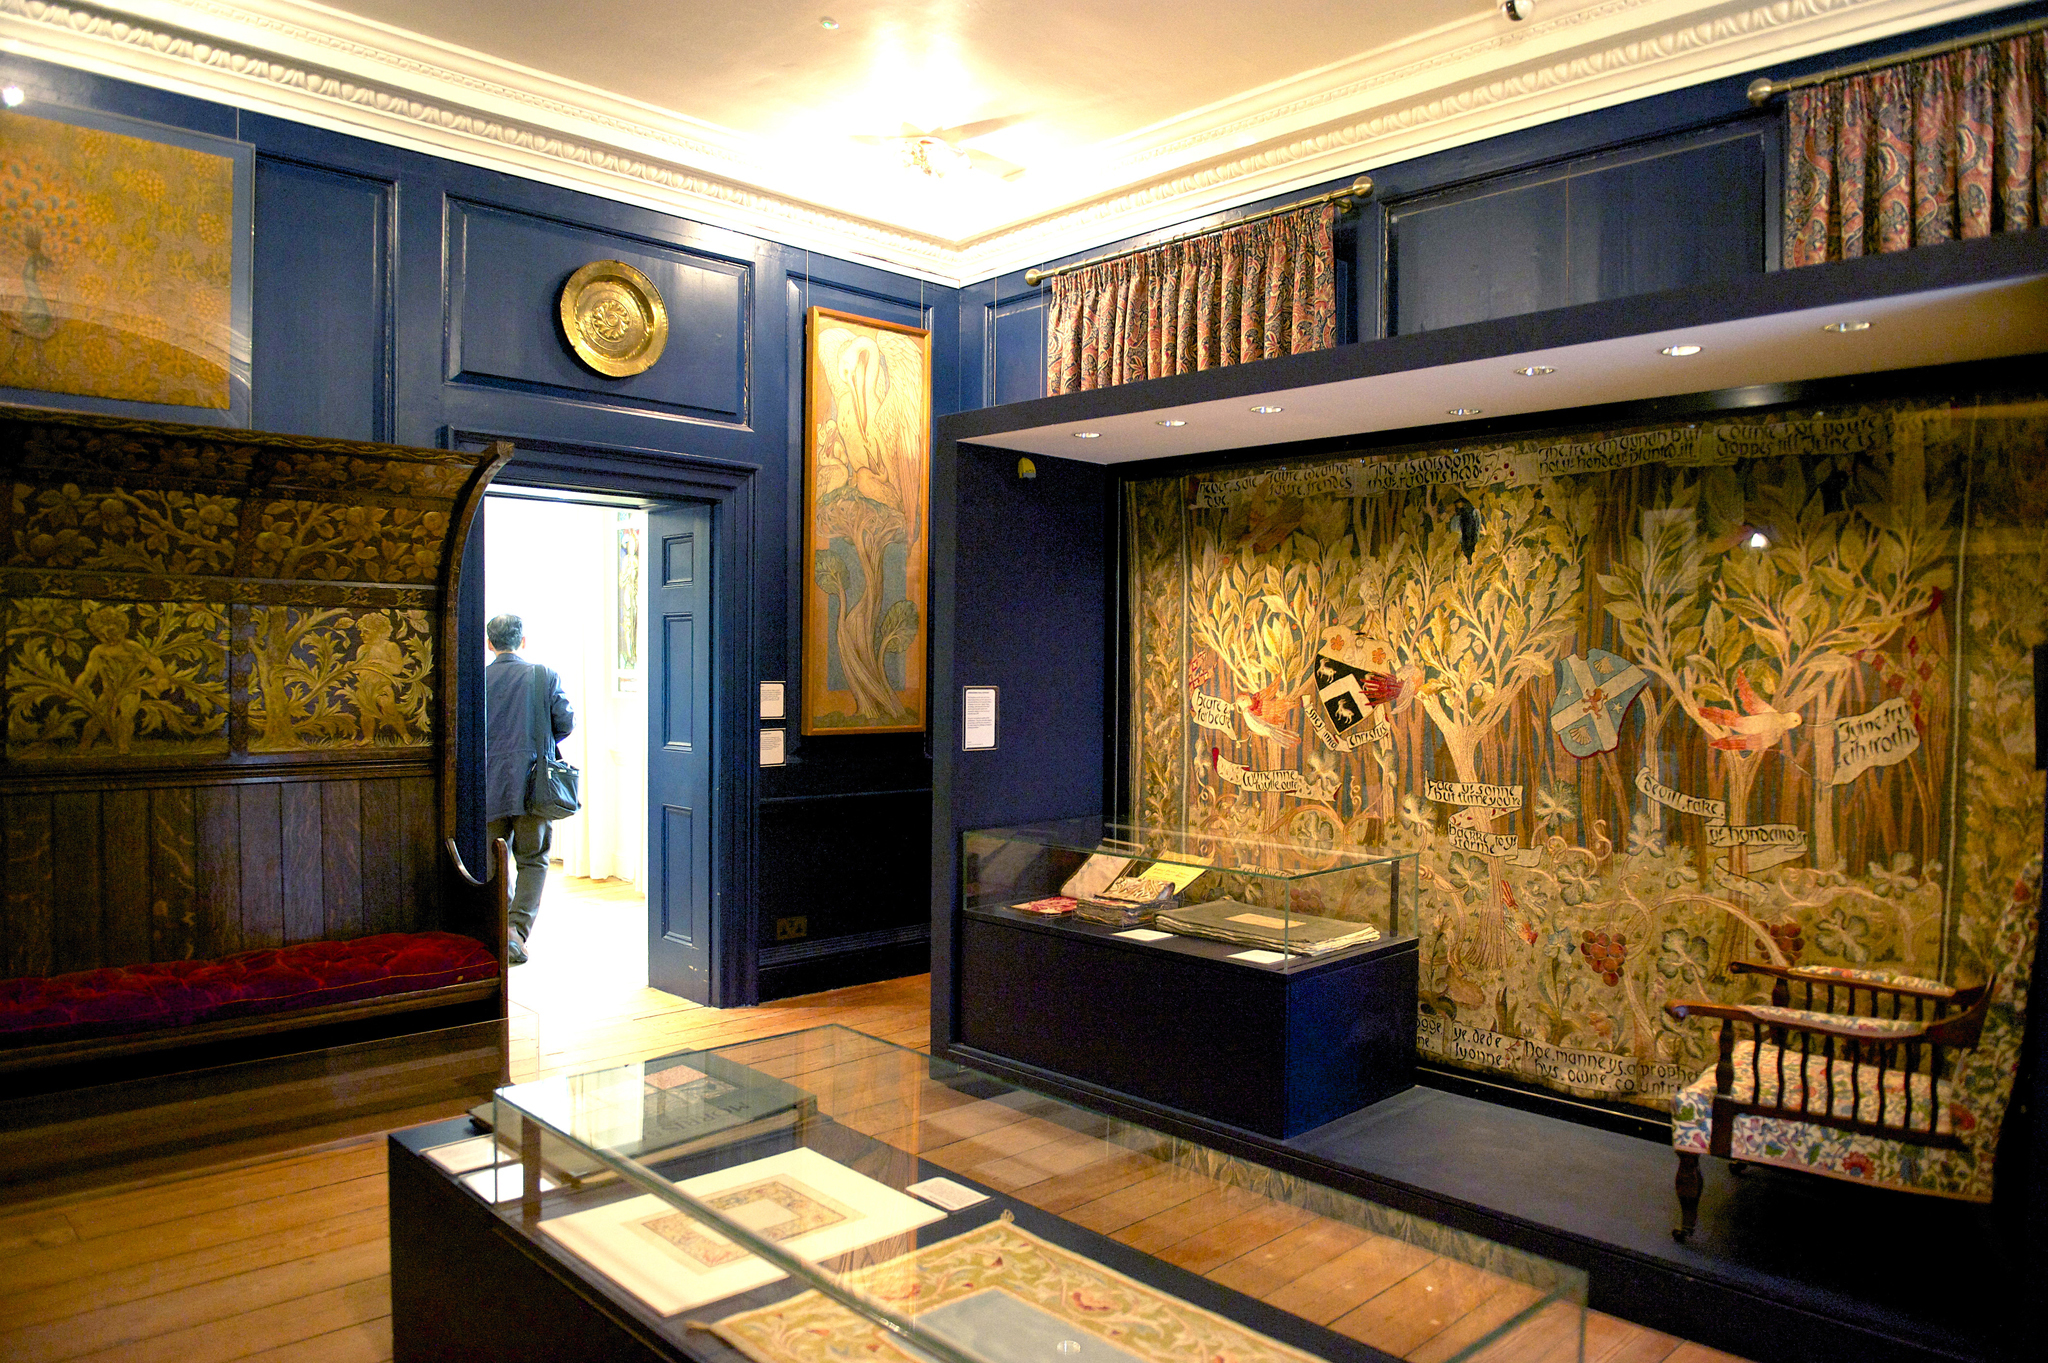 William Morris Gallery